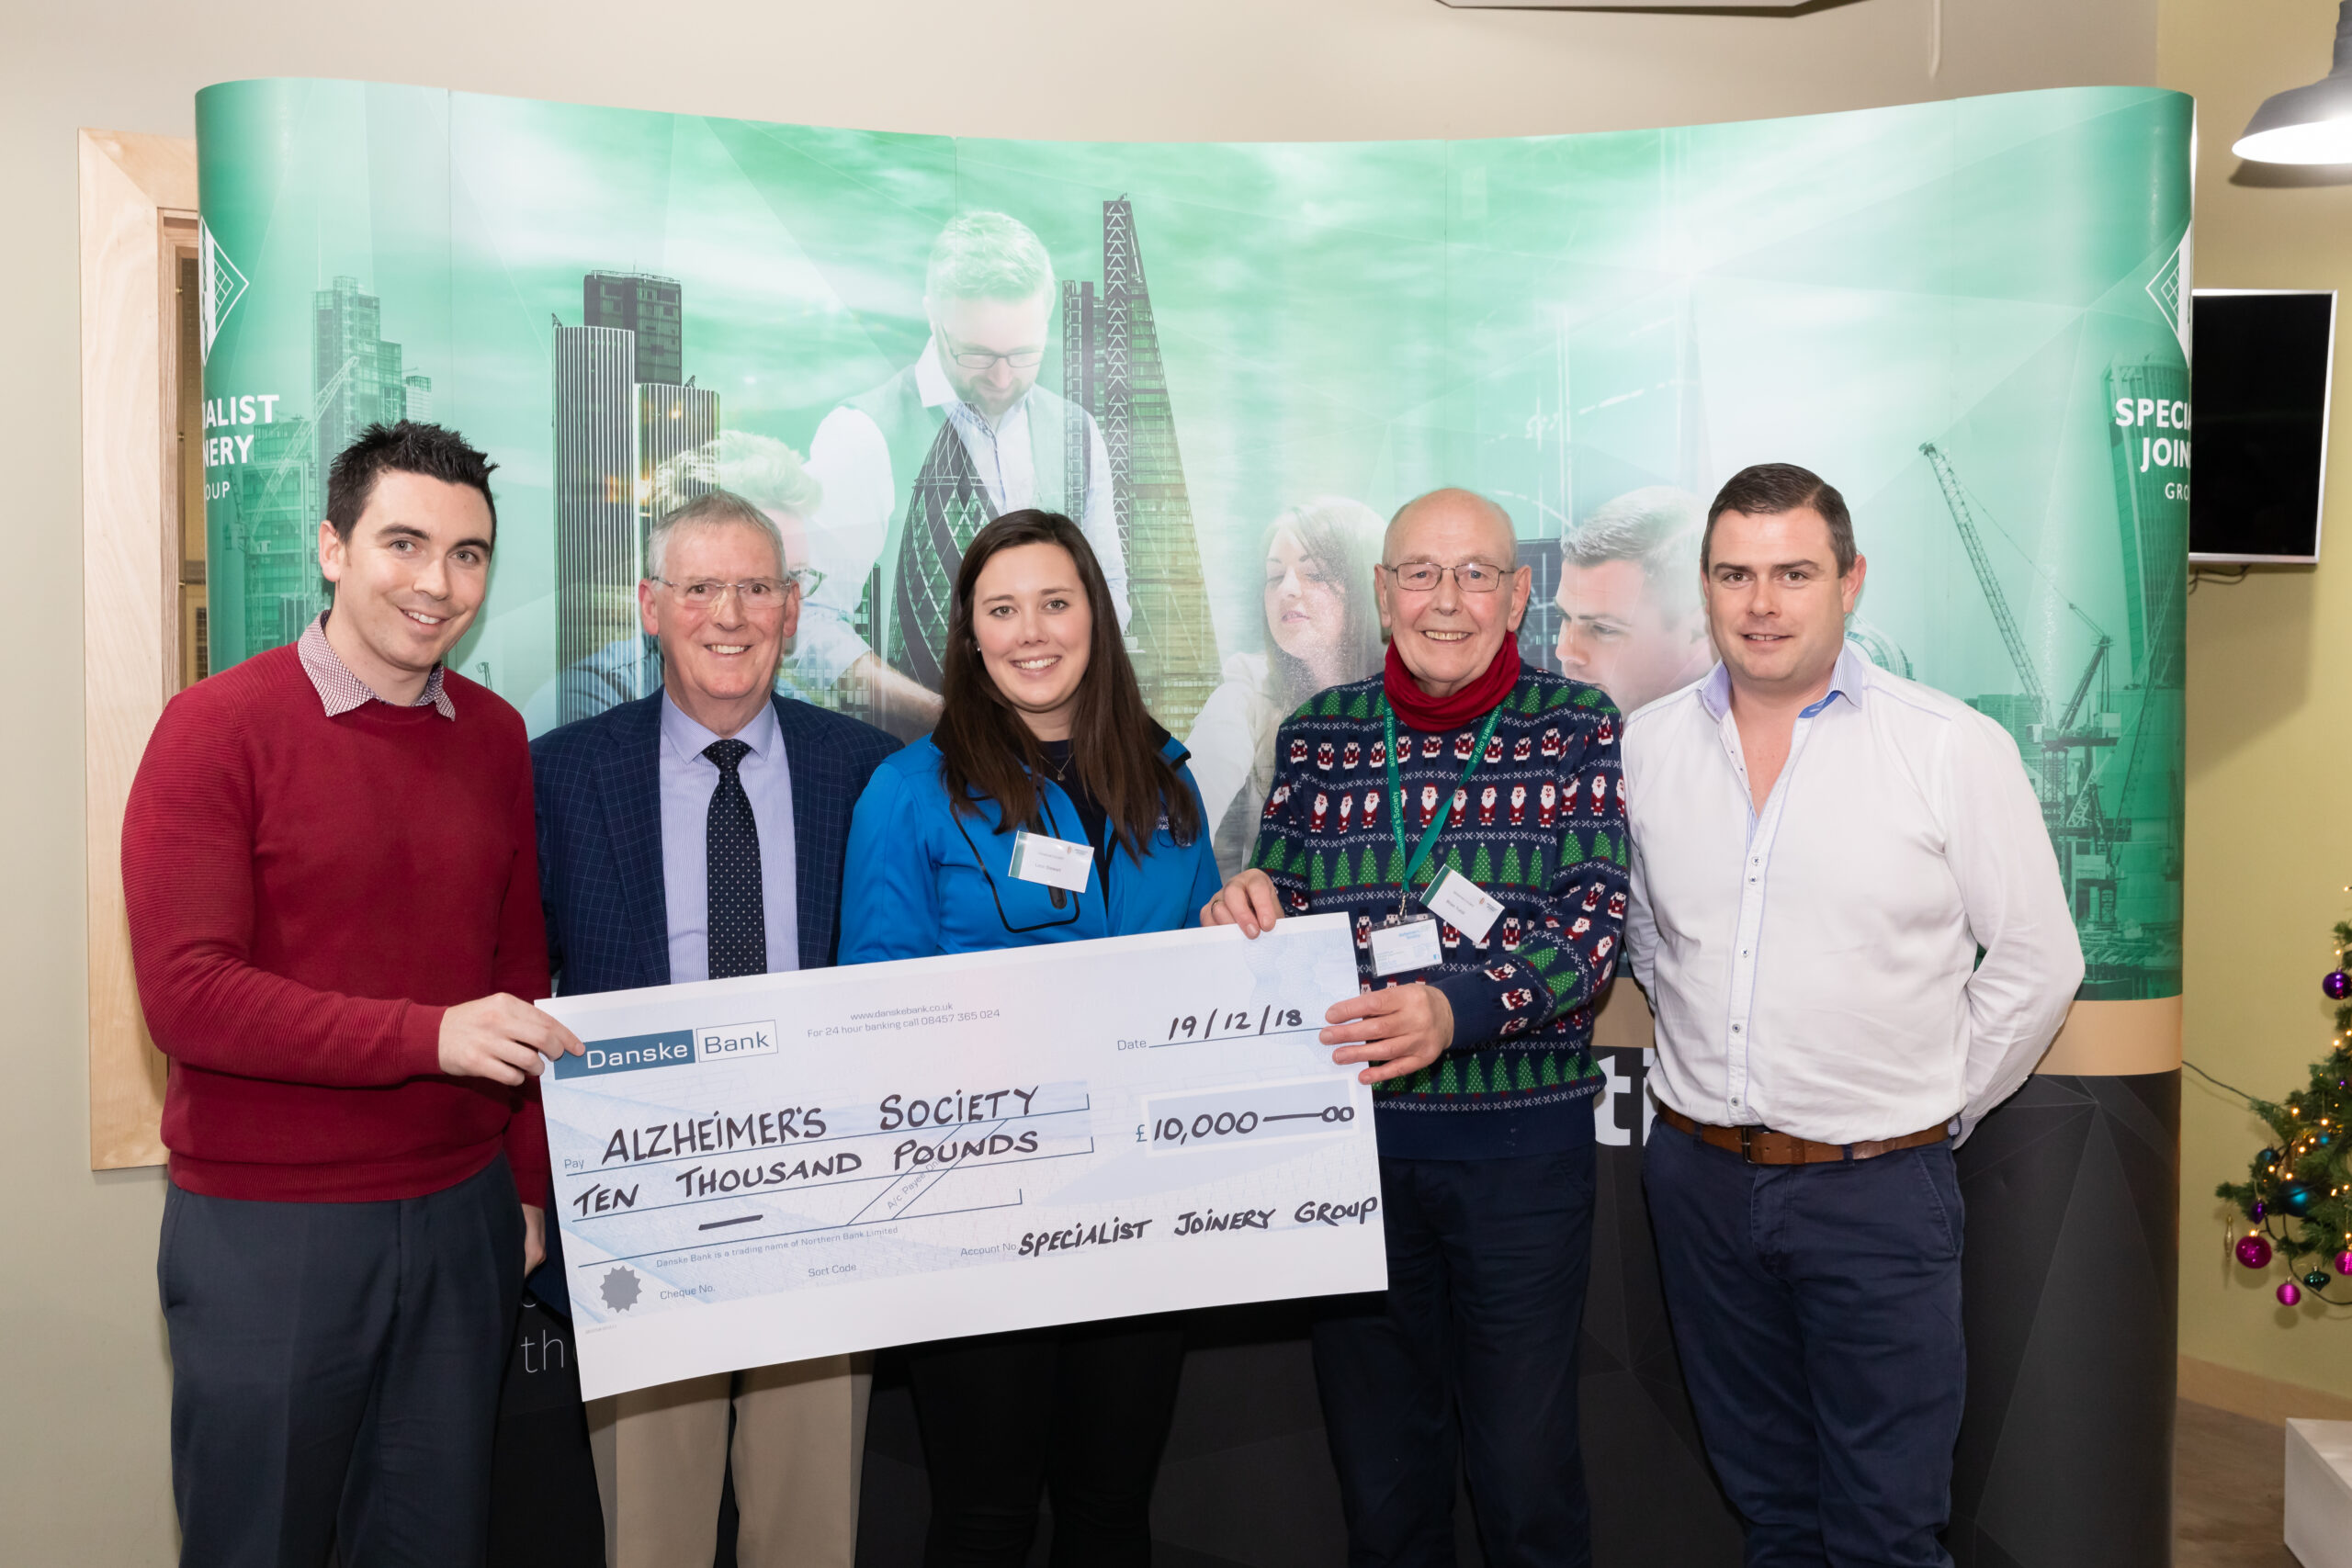 Linzi Stewart and Brian Tohill from Alzheimers Society pictured with Dermot, John Bosco and Ciaran O'Hagan